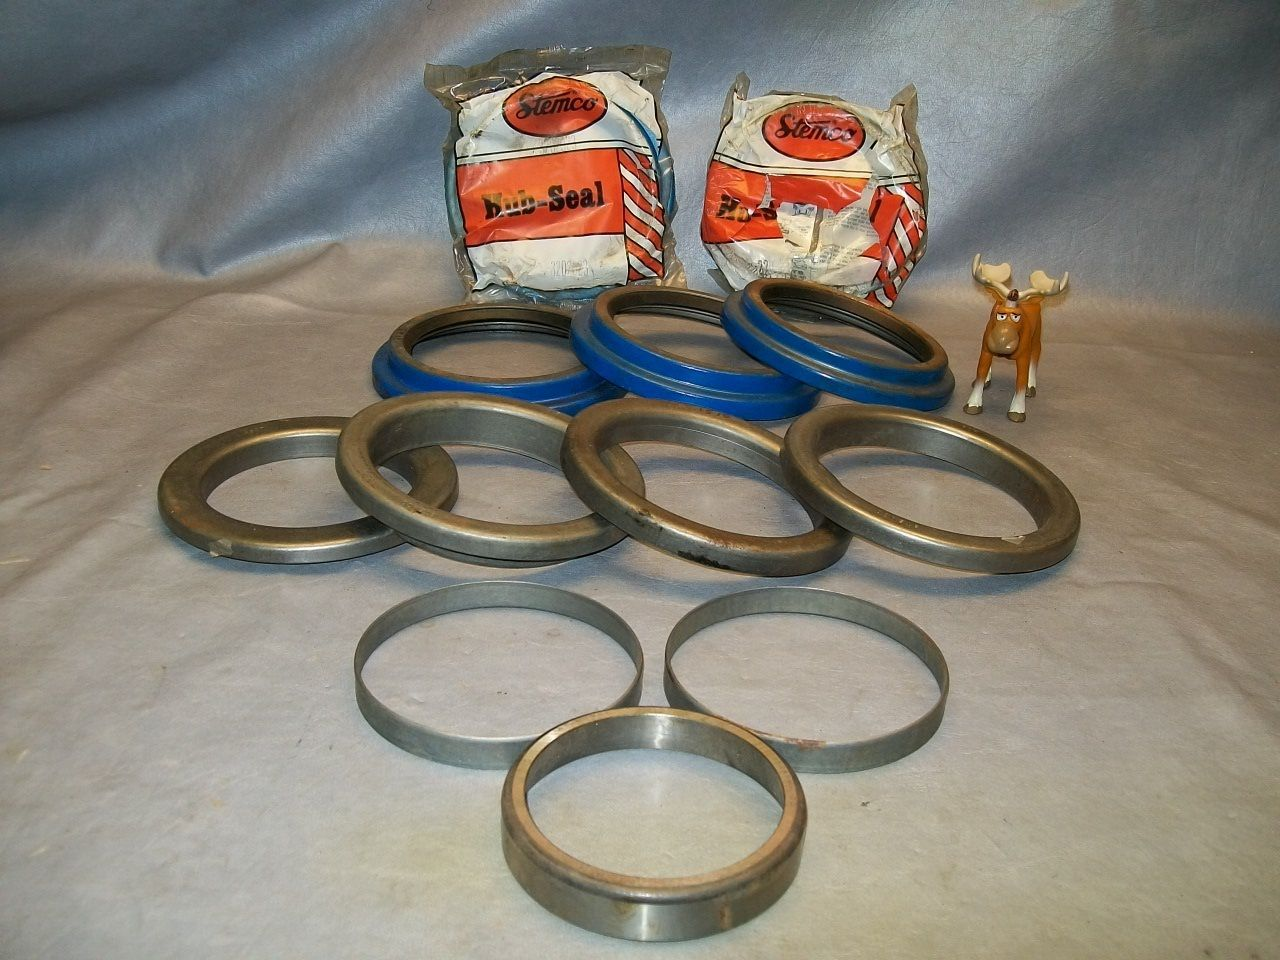 Primary image for Stemco Grit Guard Hub Seals and O Rings Large Lot of 12 Various Part Numbers